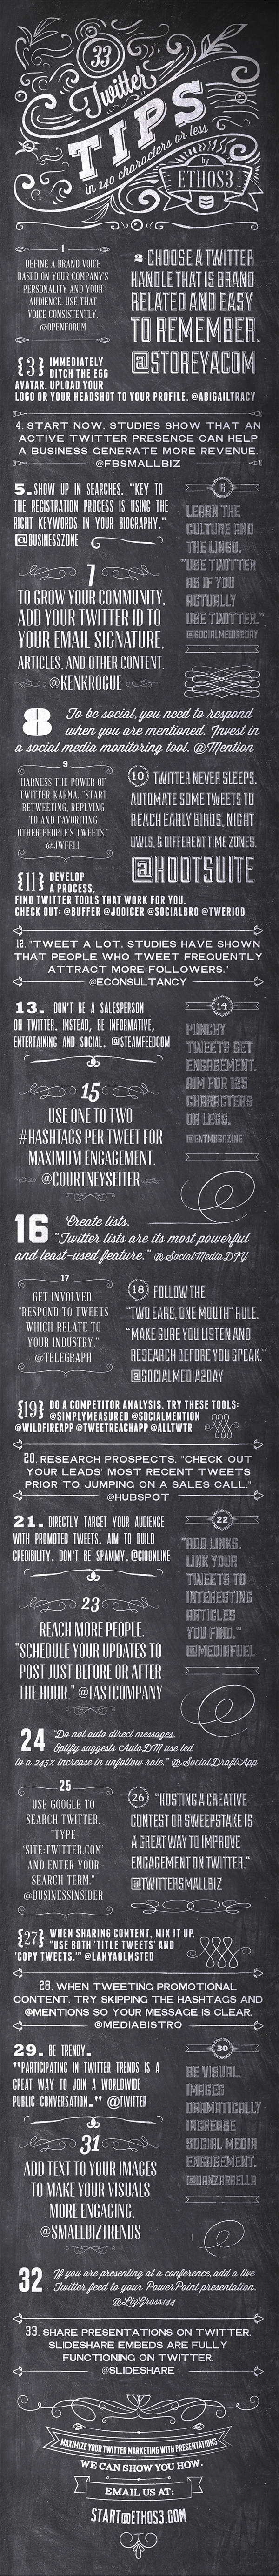 33 Twitter Tips in 140 Characters or Less for a More Effective Twitter Strategy